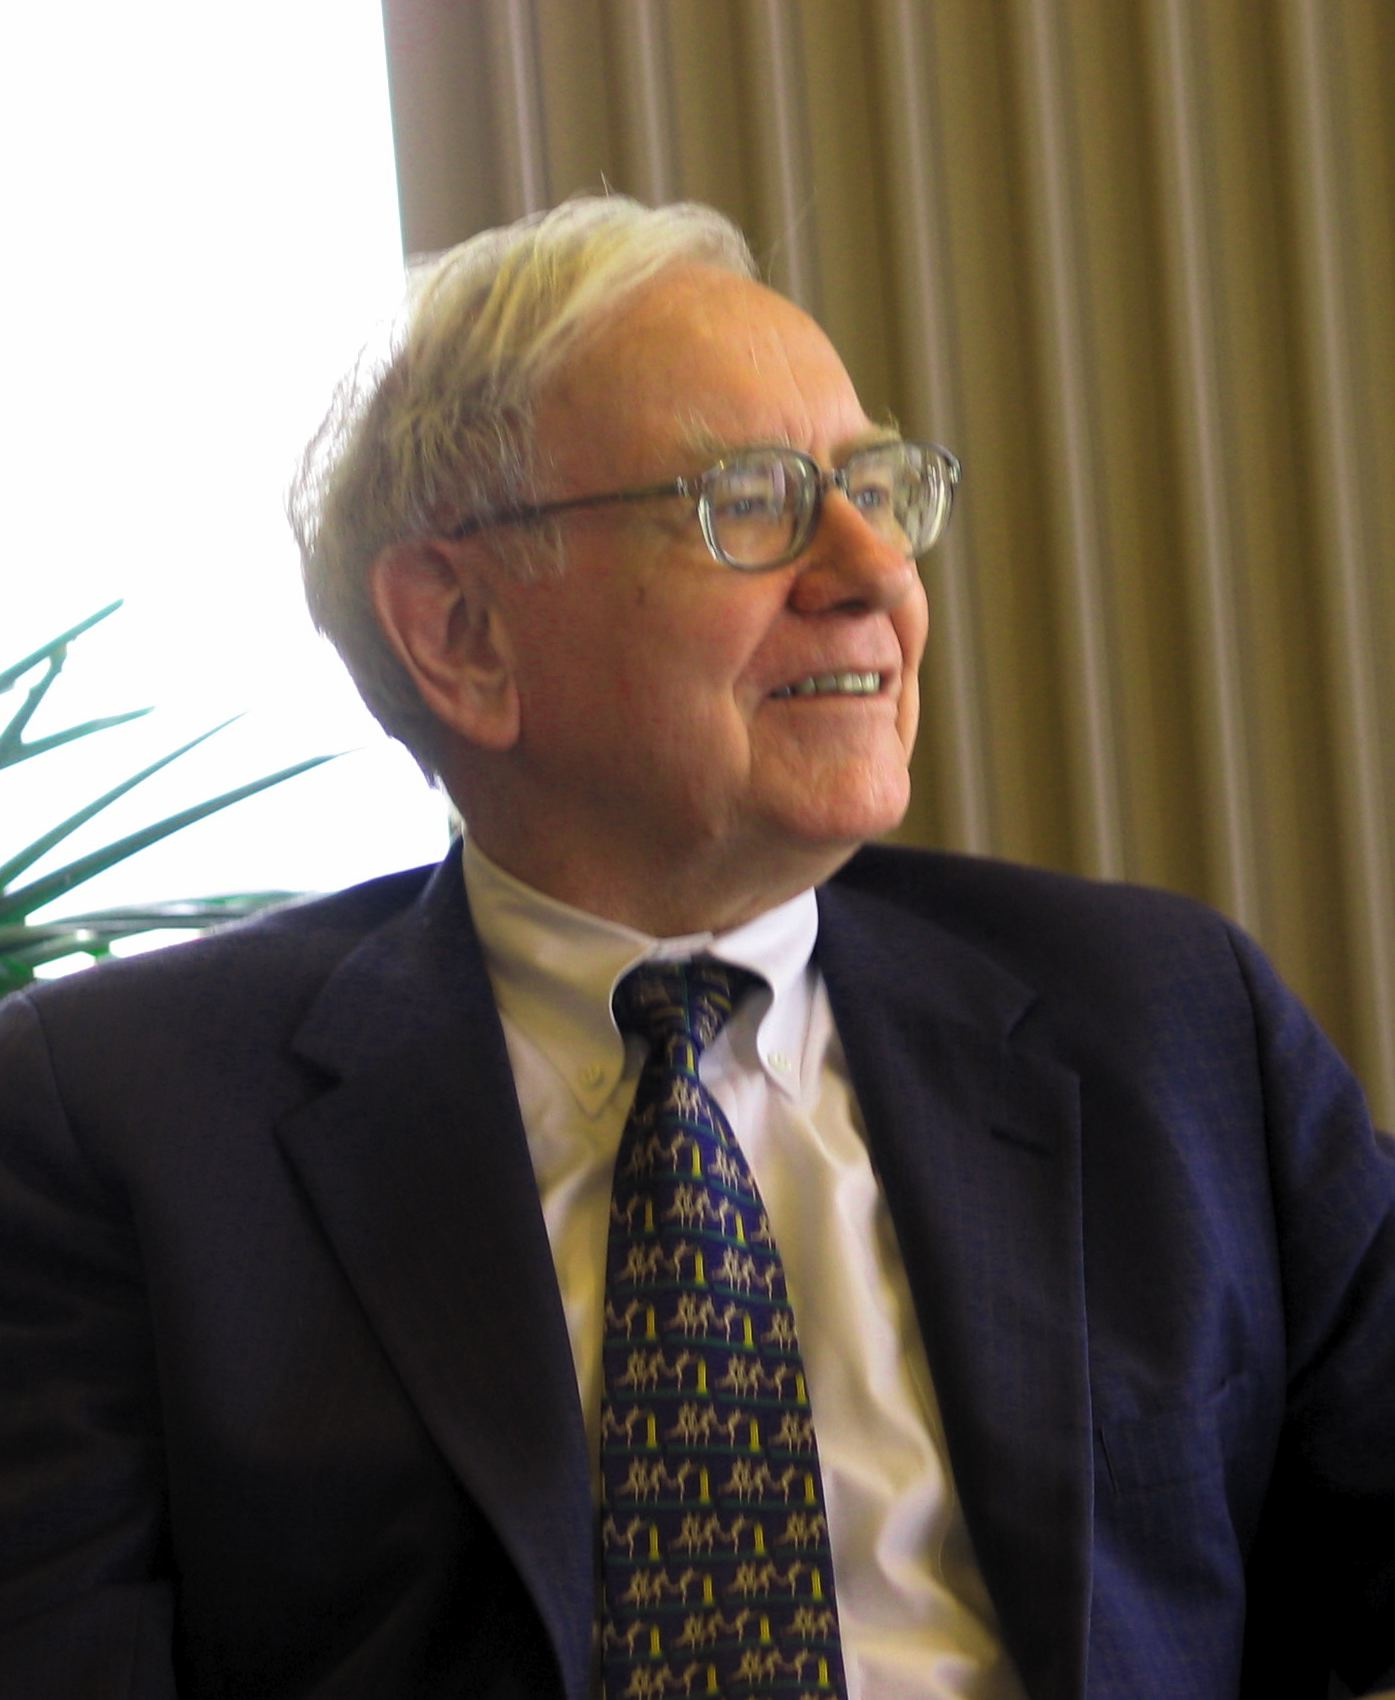 Value Investing Example: Warren Buffett